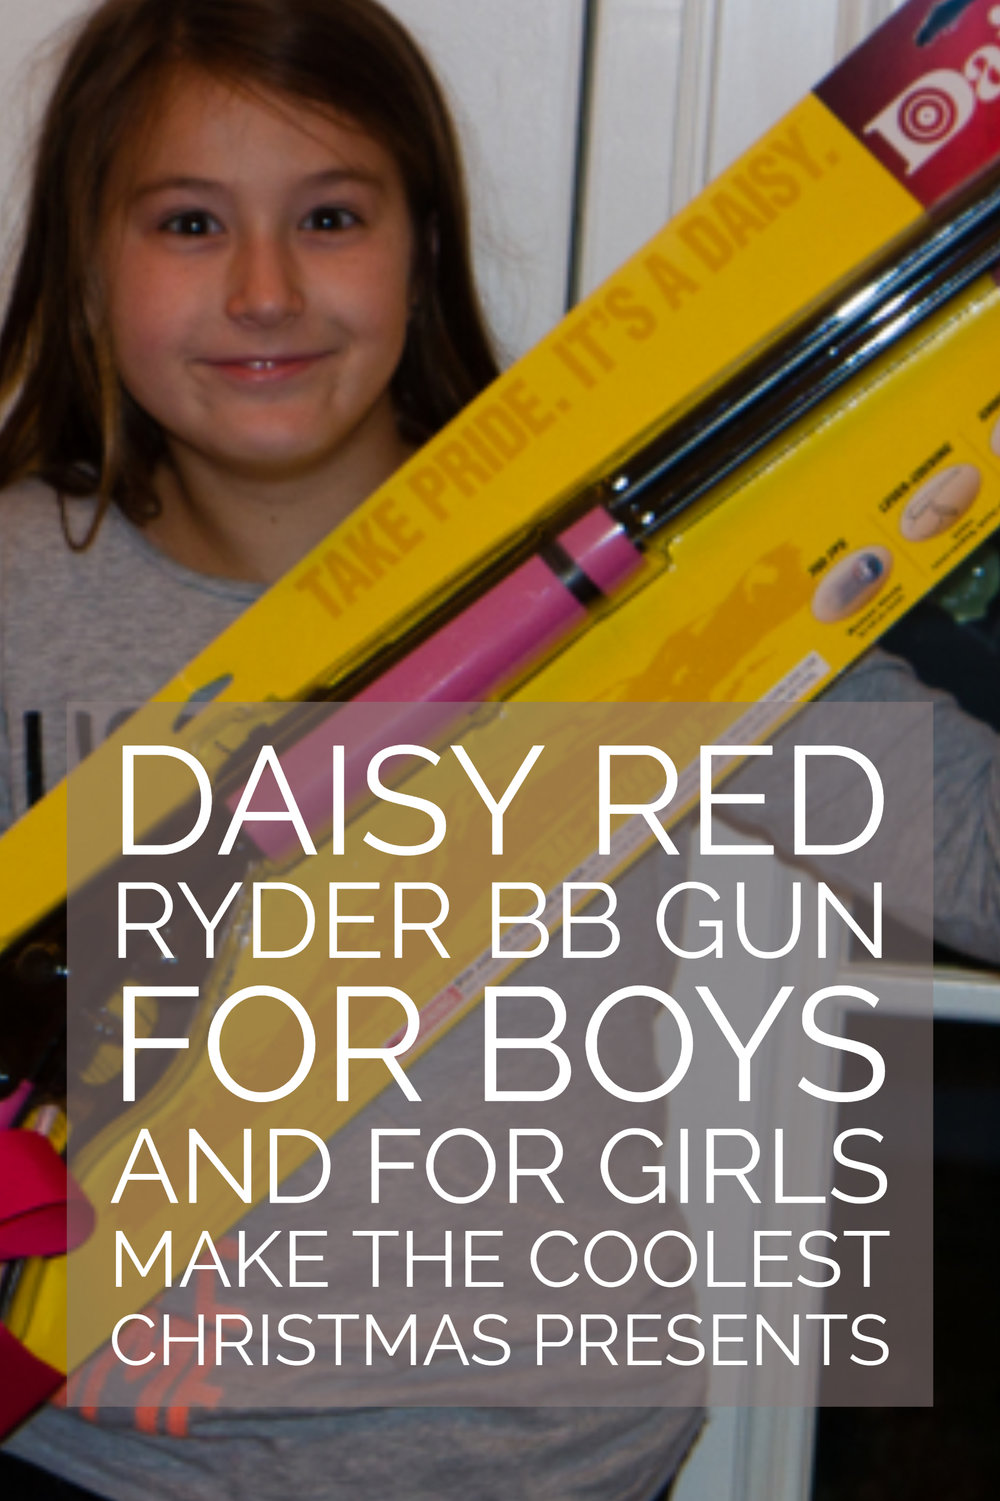 Daisy BB Guns are the Best Gifts for Girls